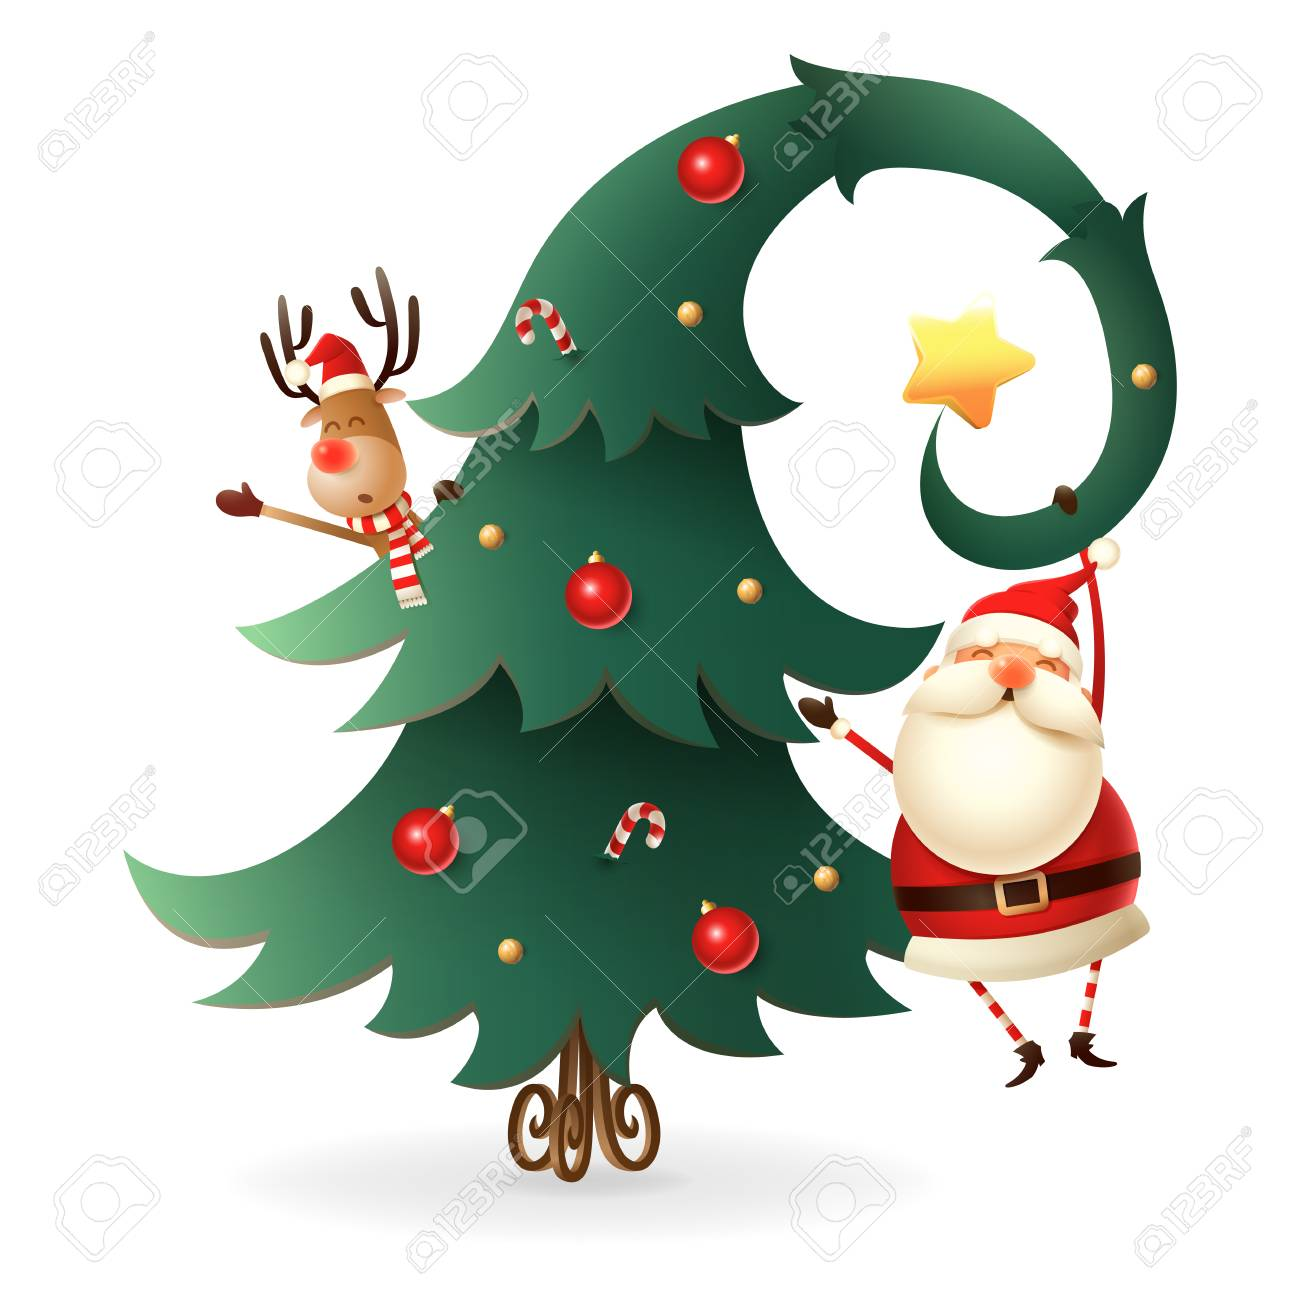 Christmas Graphics Transparent.Santa Claus And Reindeer Around The Christmas Tree On Transparent